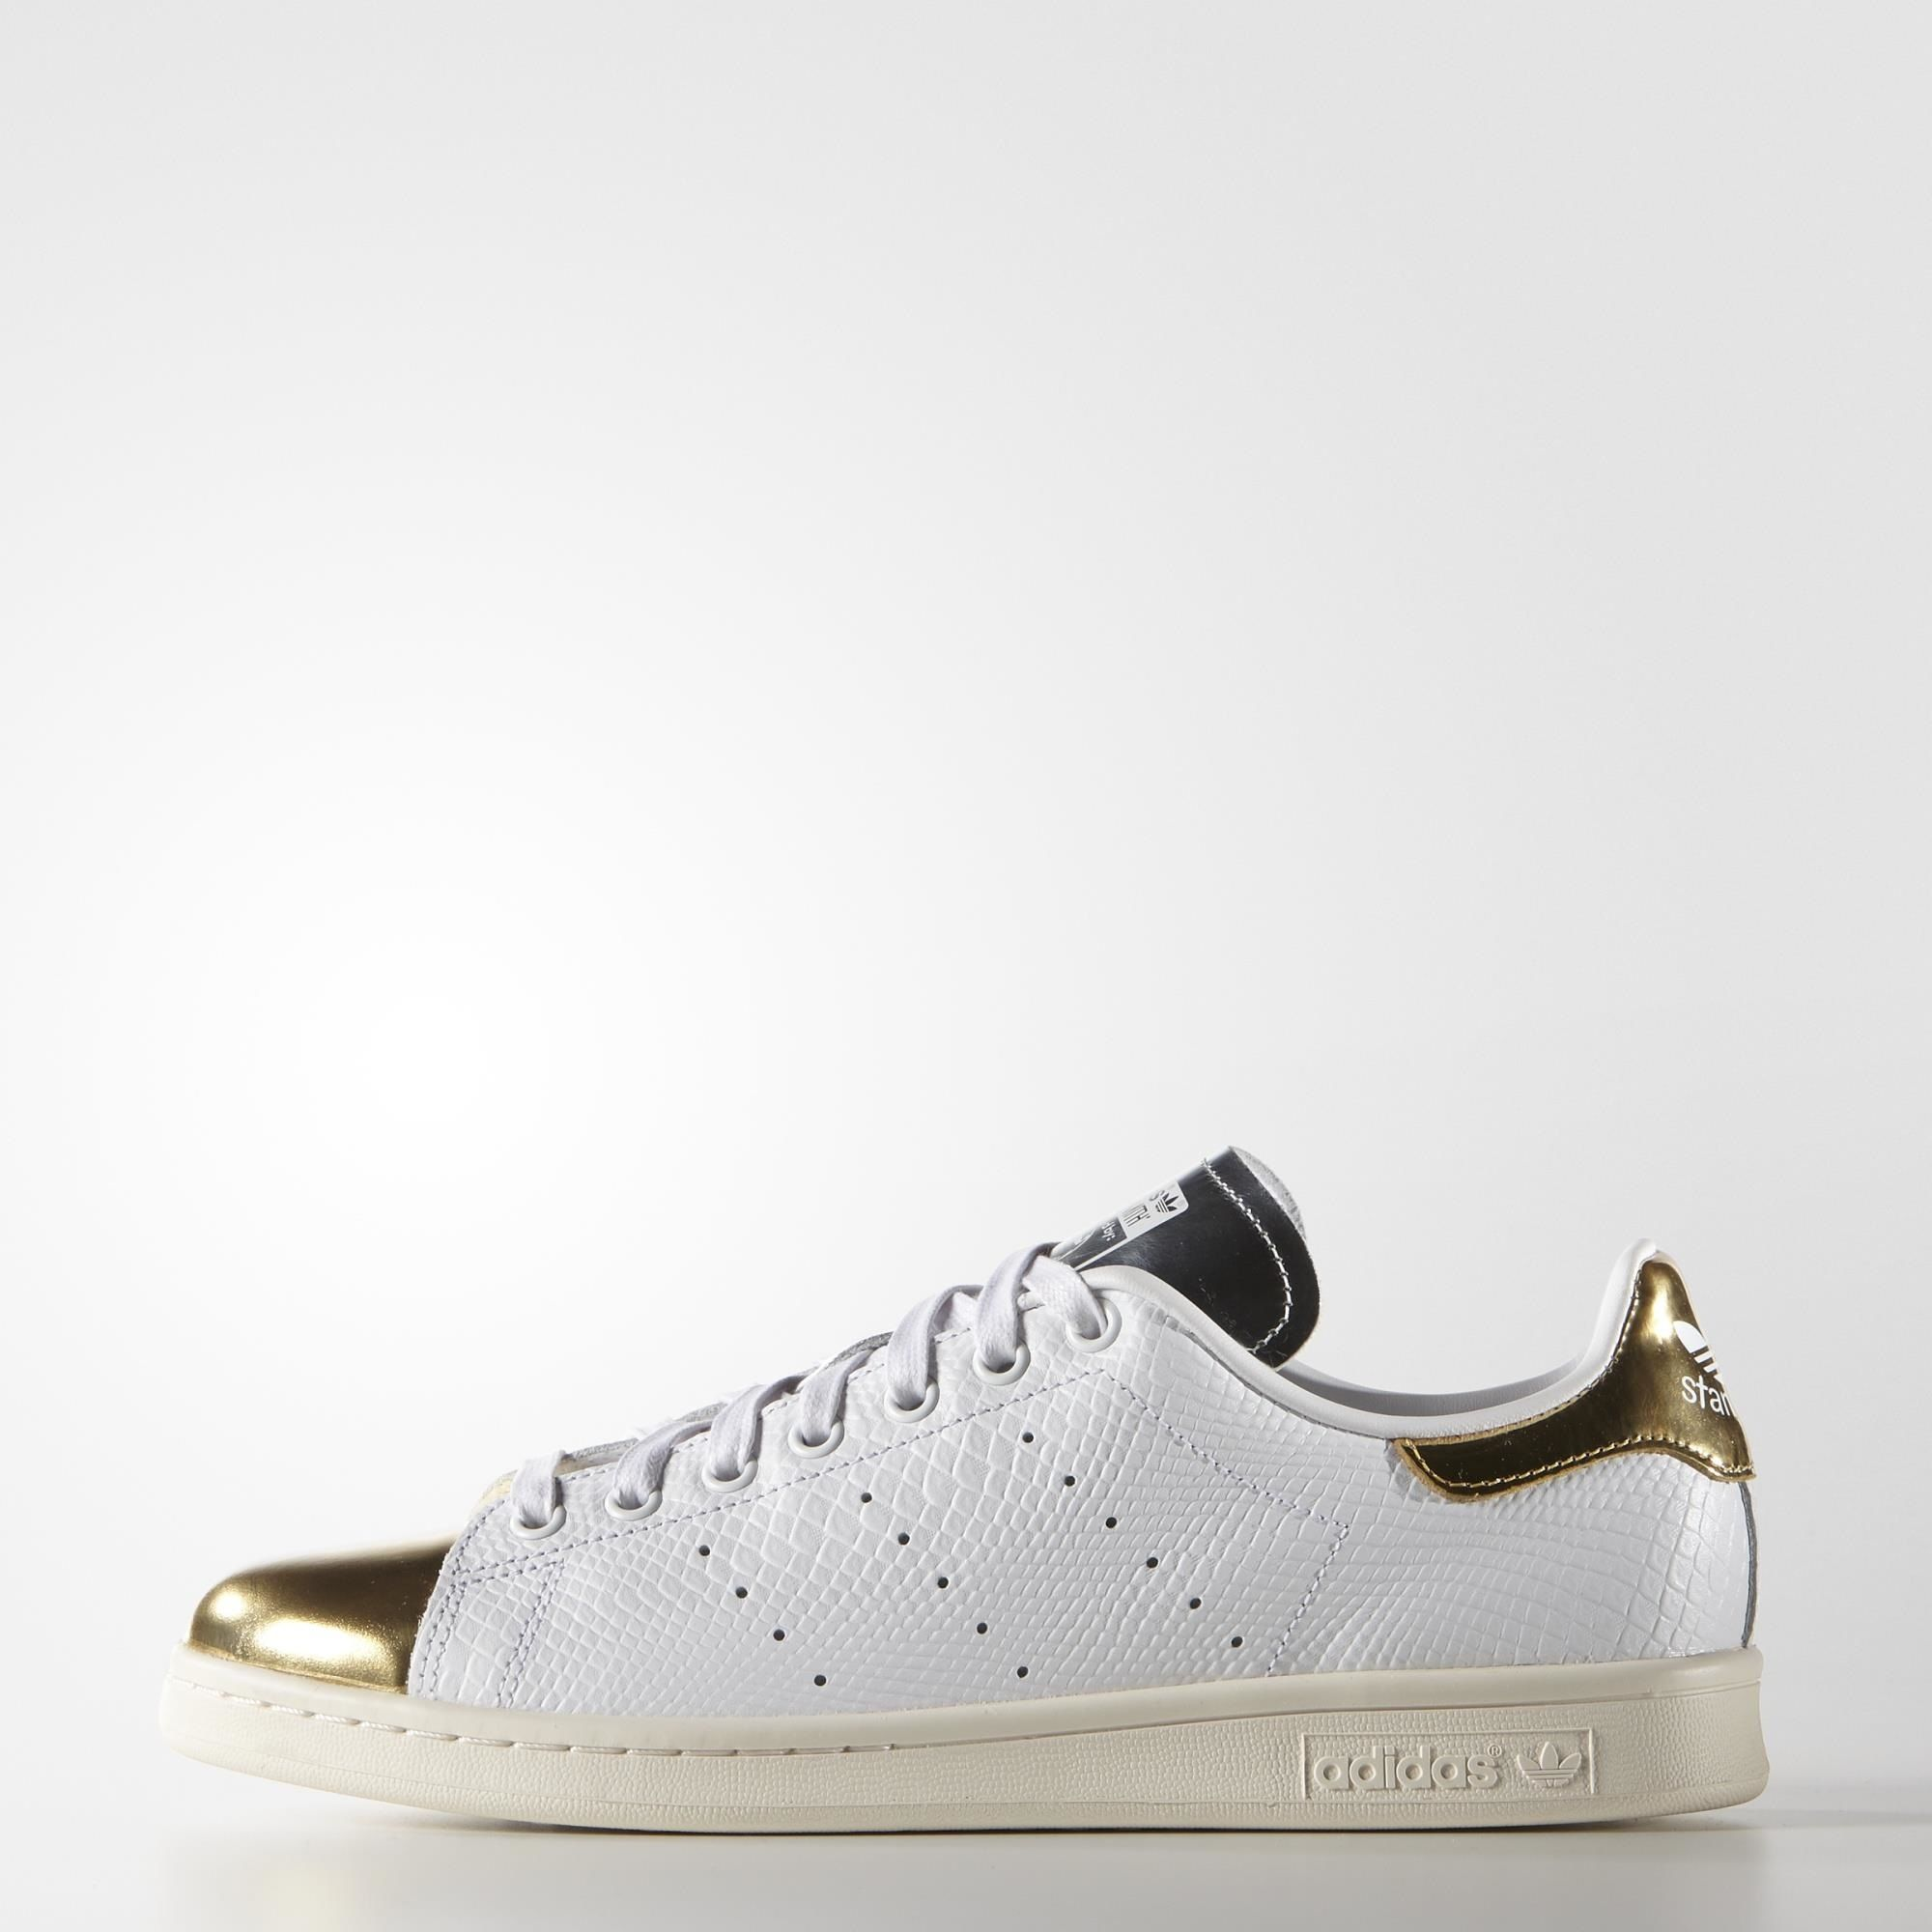 Find your adidas Women, Originals, Stan Smith, Shoes at adidas. All styles and  colours available in the official adidas online store.